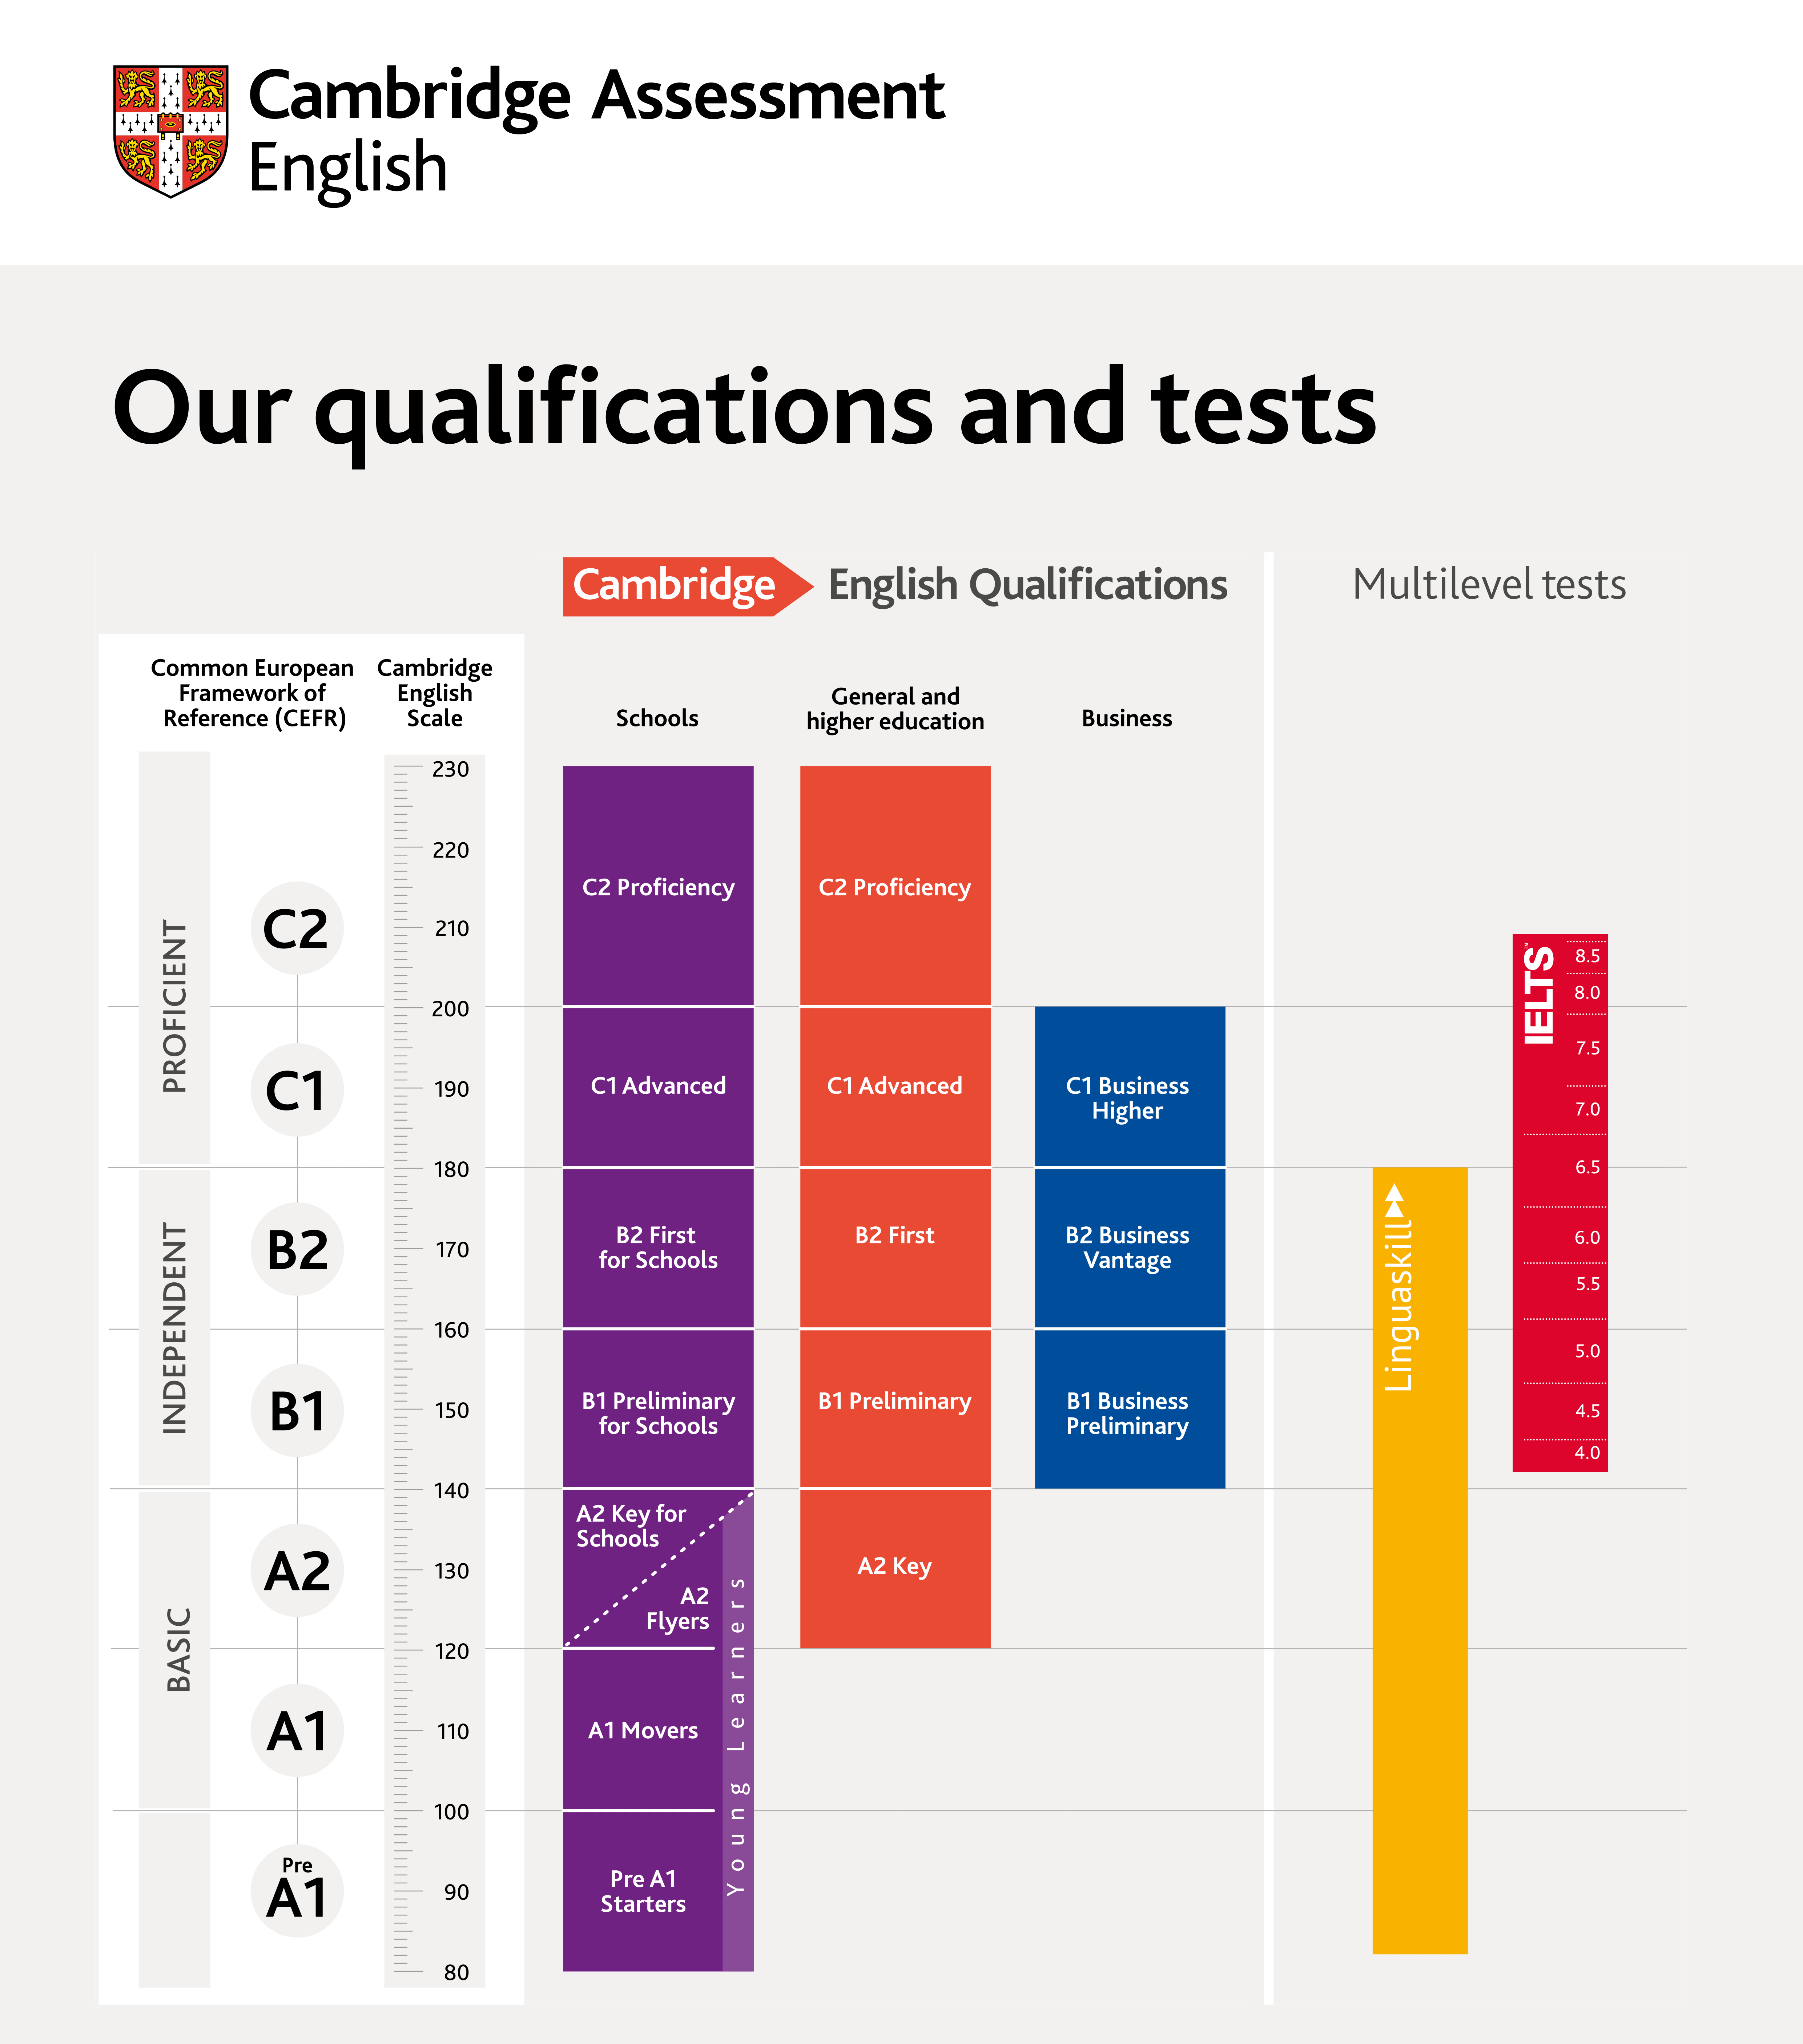 Cambridge English Exams qualifications and tests on a scale